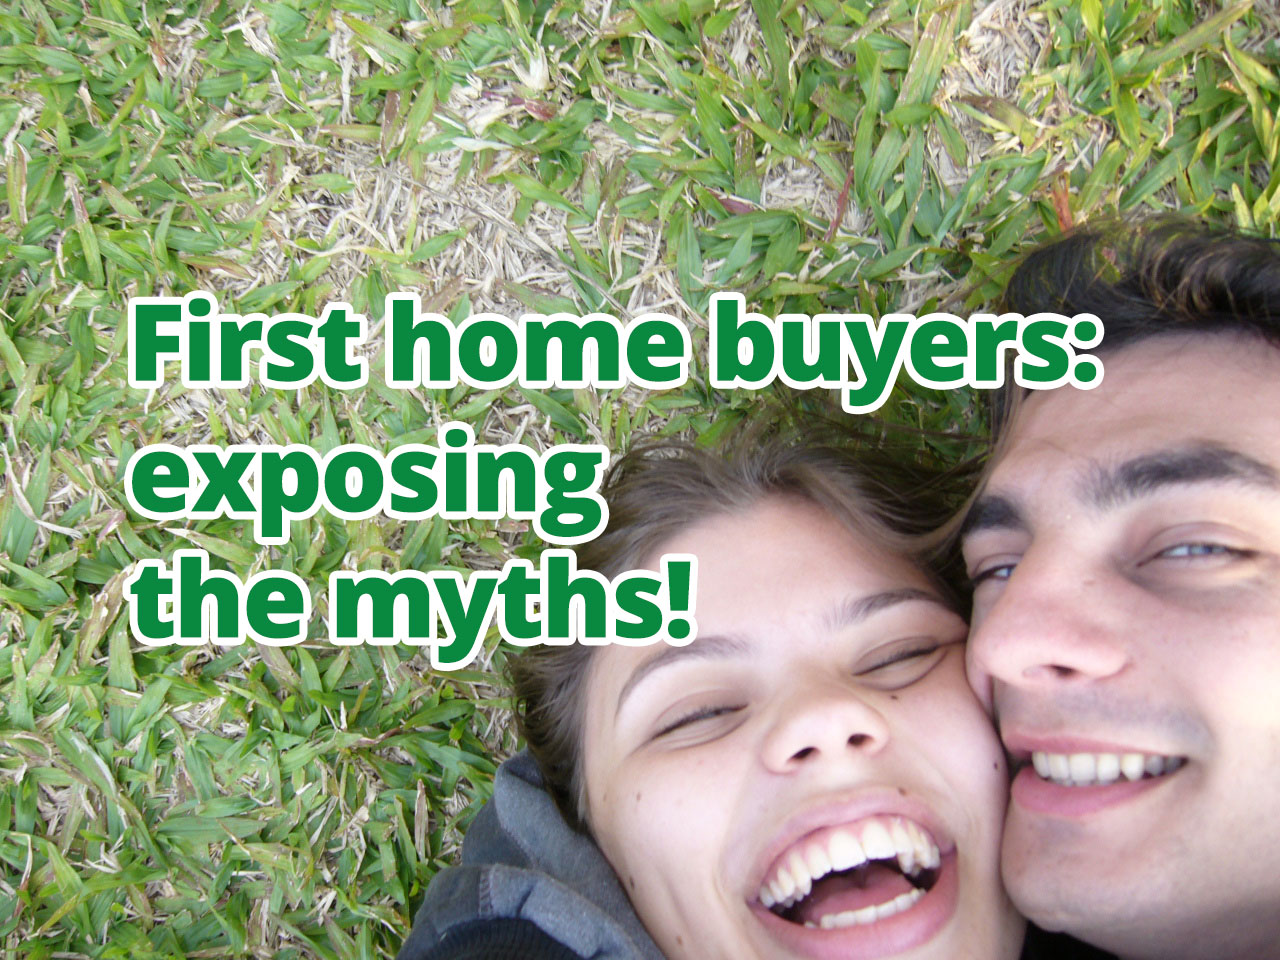 First home buyers: exposing the myths